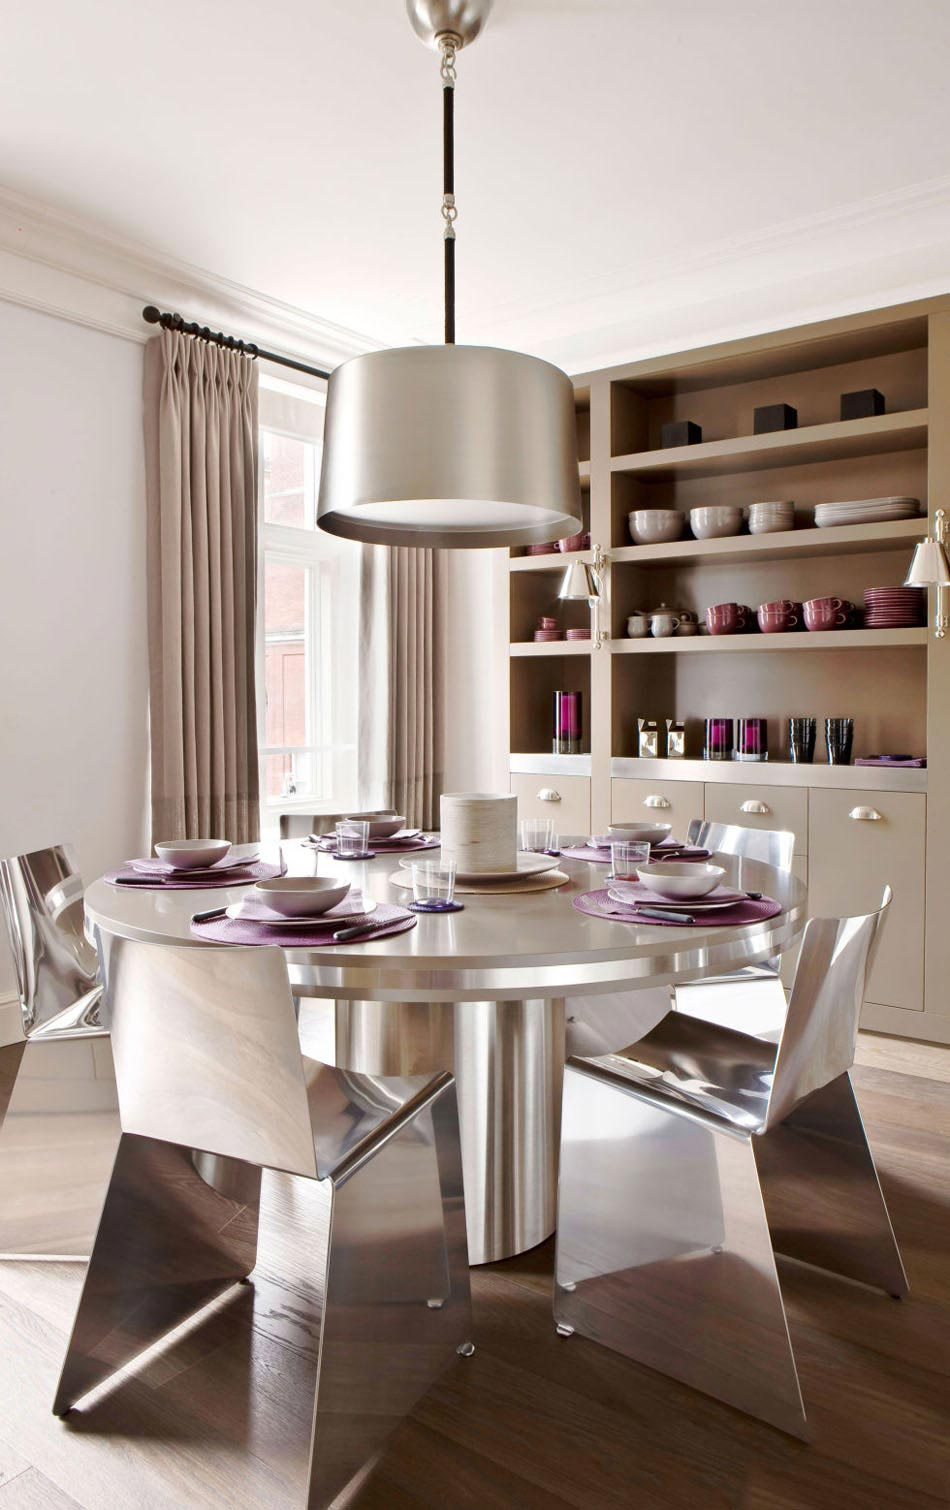 Awesome table a manger moderne et chic images lalawgroup for Table a manger chaises